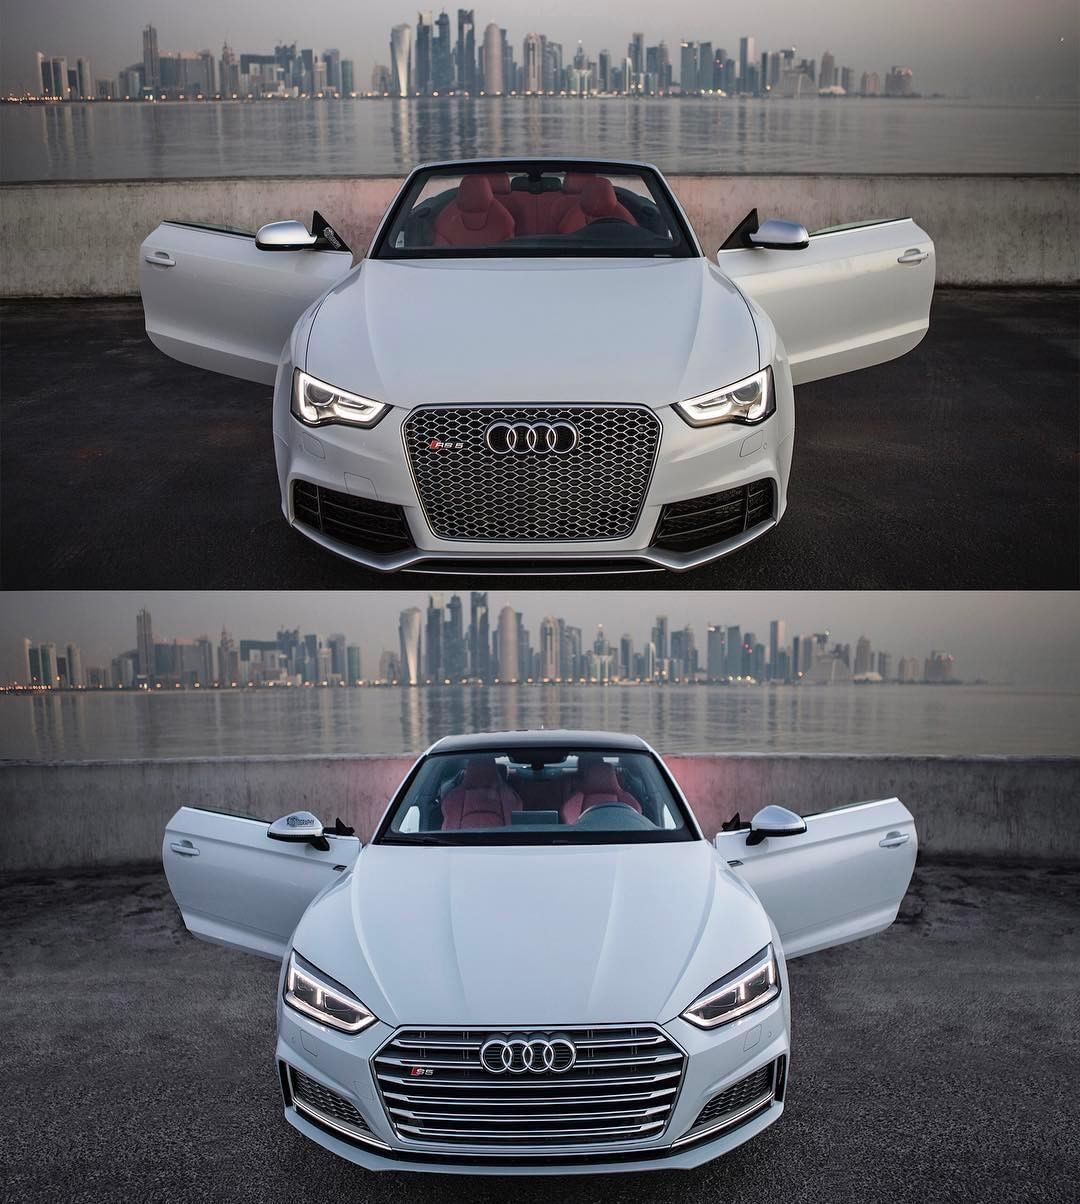 Old Or New Auditography Audi S5 Coupe A5 Quattro Audis5